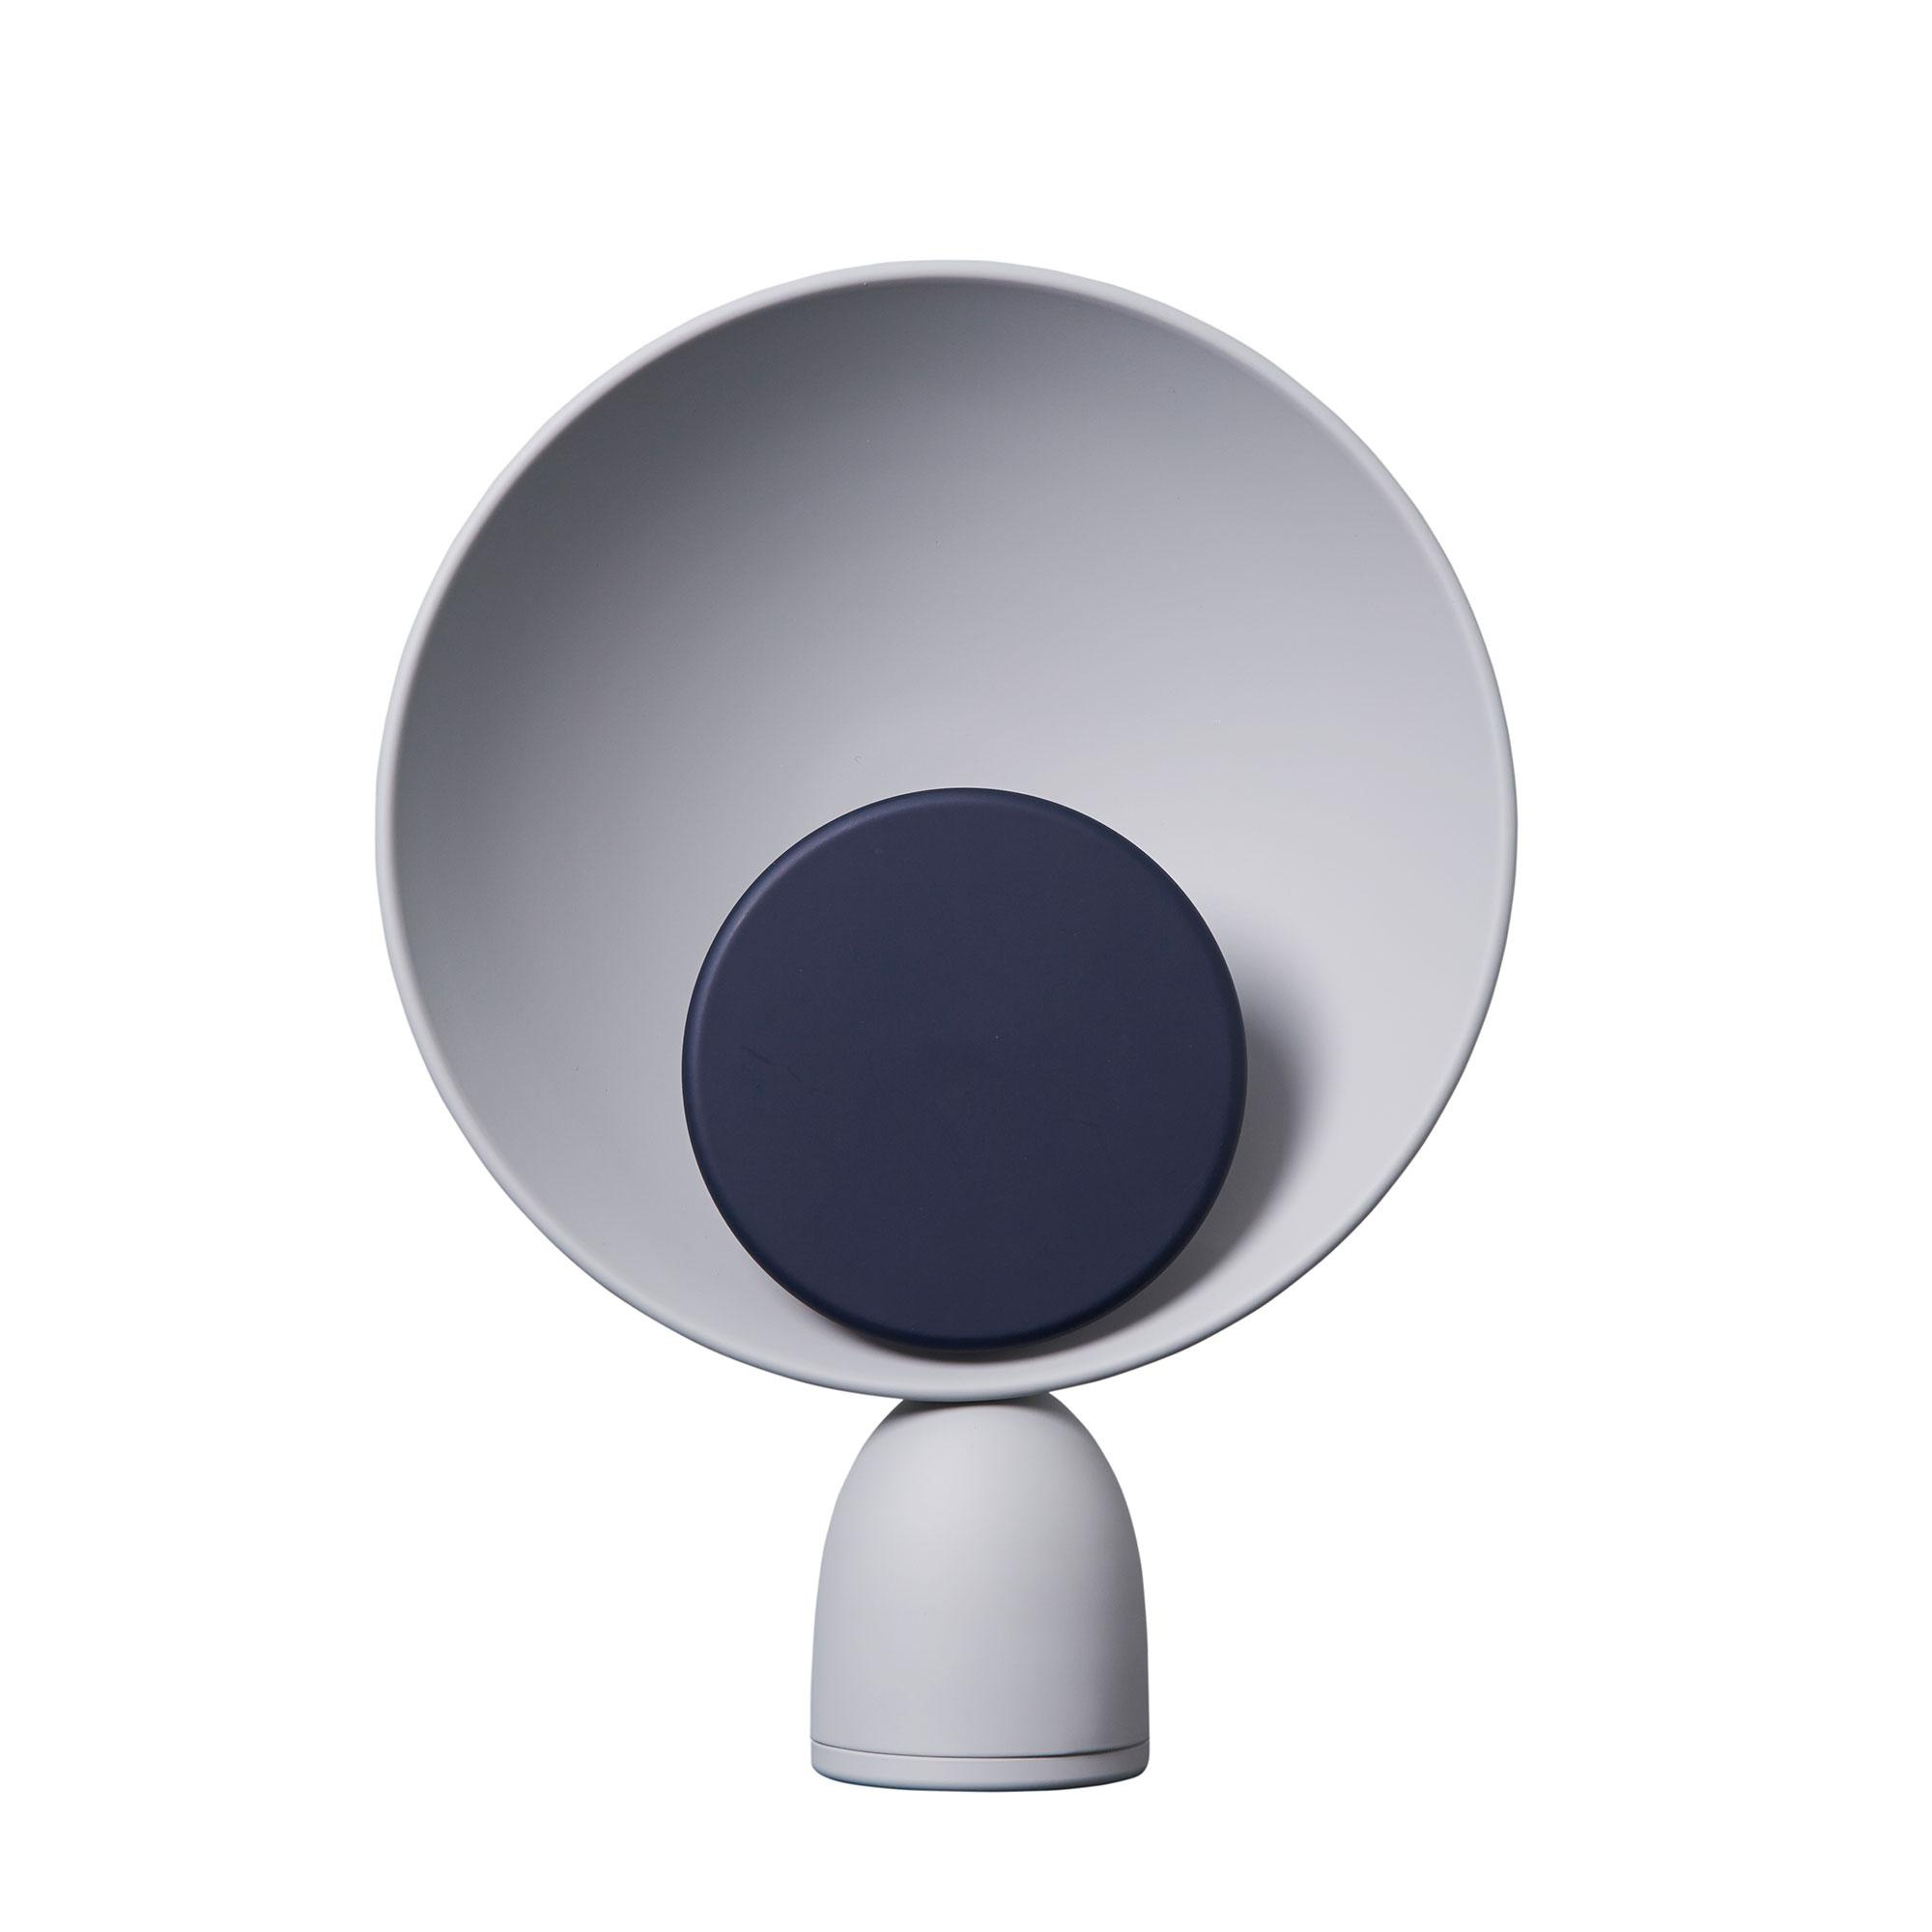 PLEASE WAIT to be SEATED - Blooper - Lampe de table LED - gris cendré/bleu marine/avec gradateur/2900K